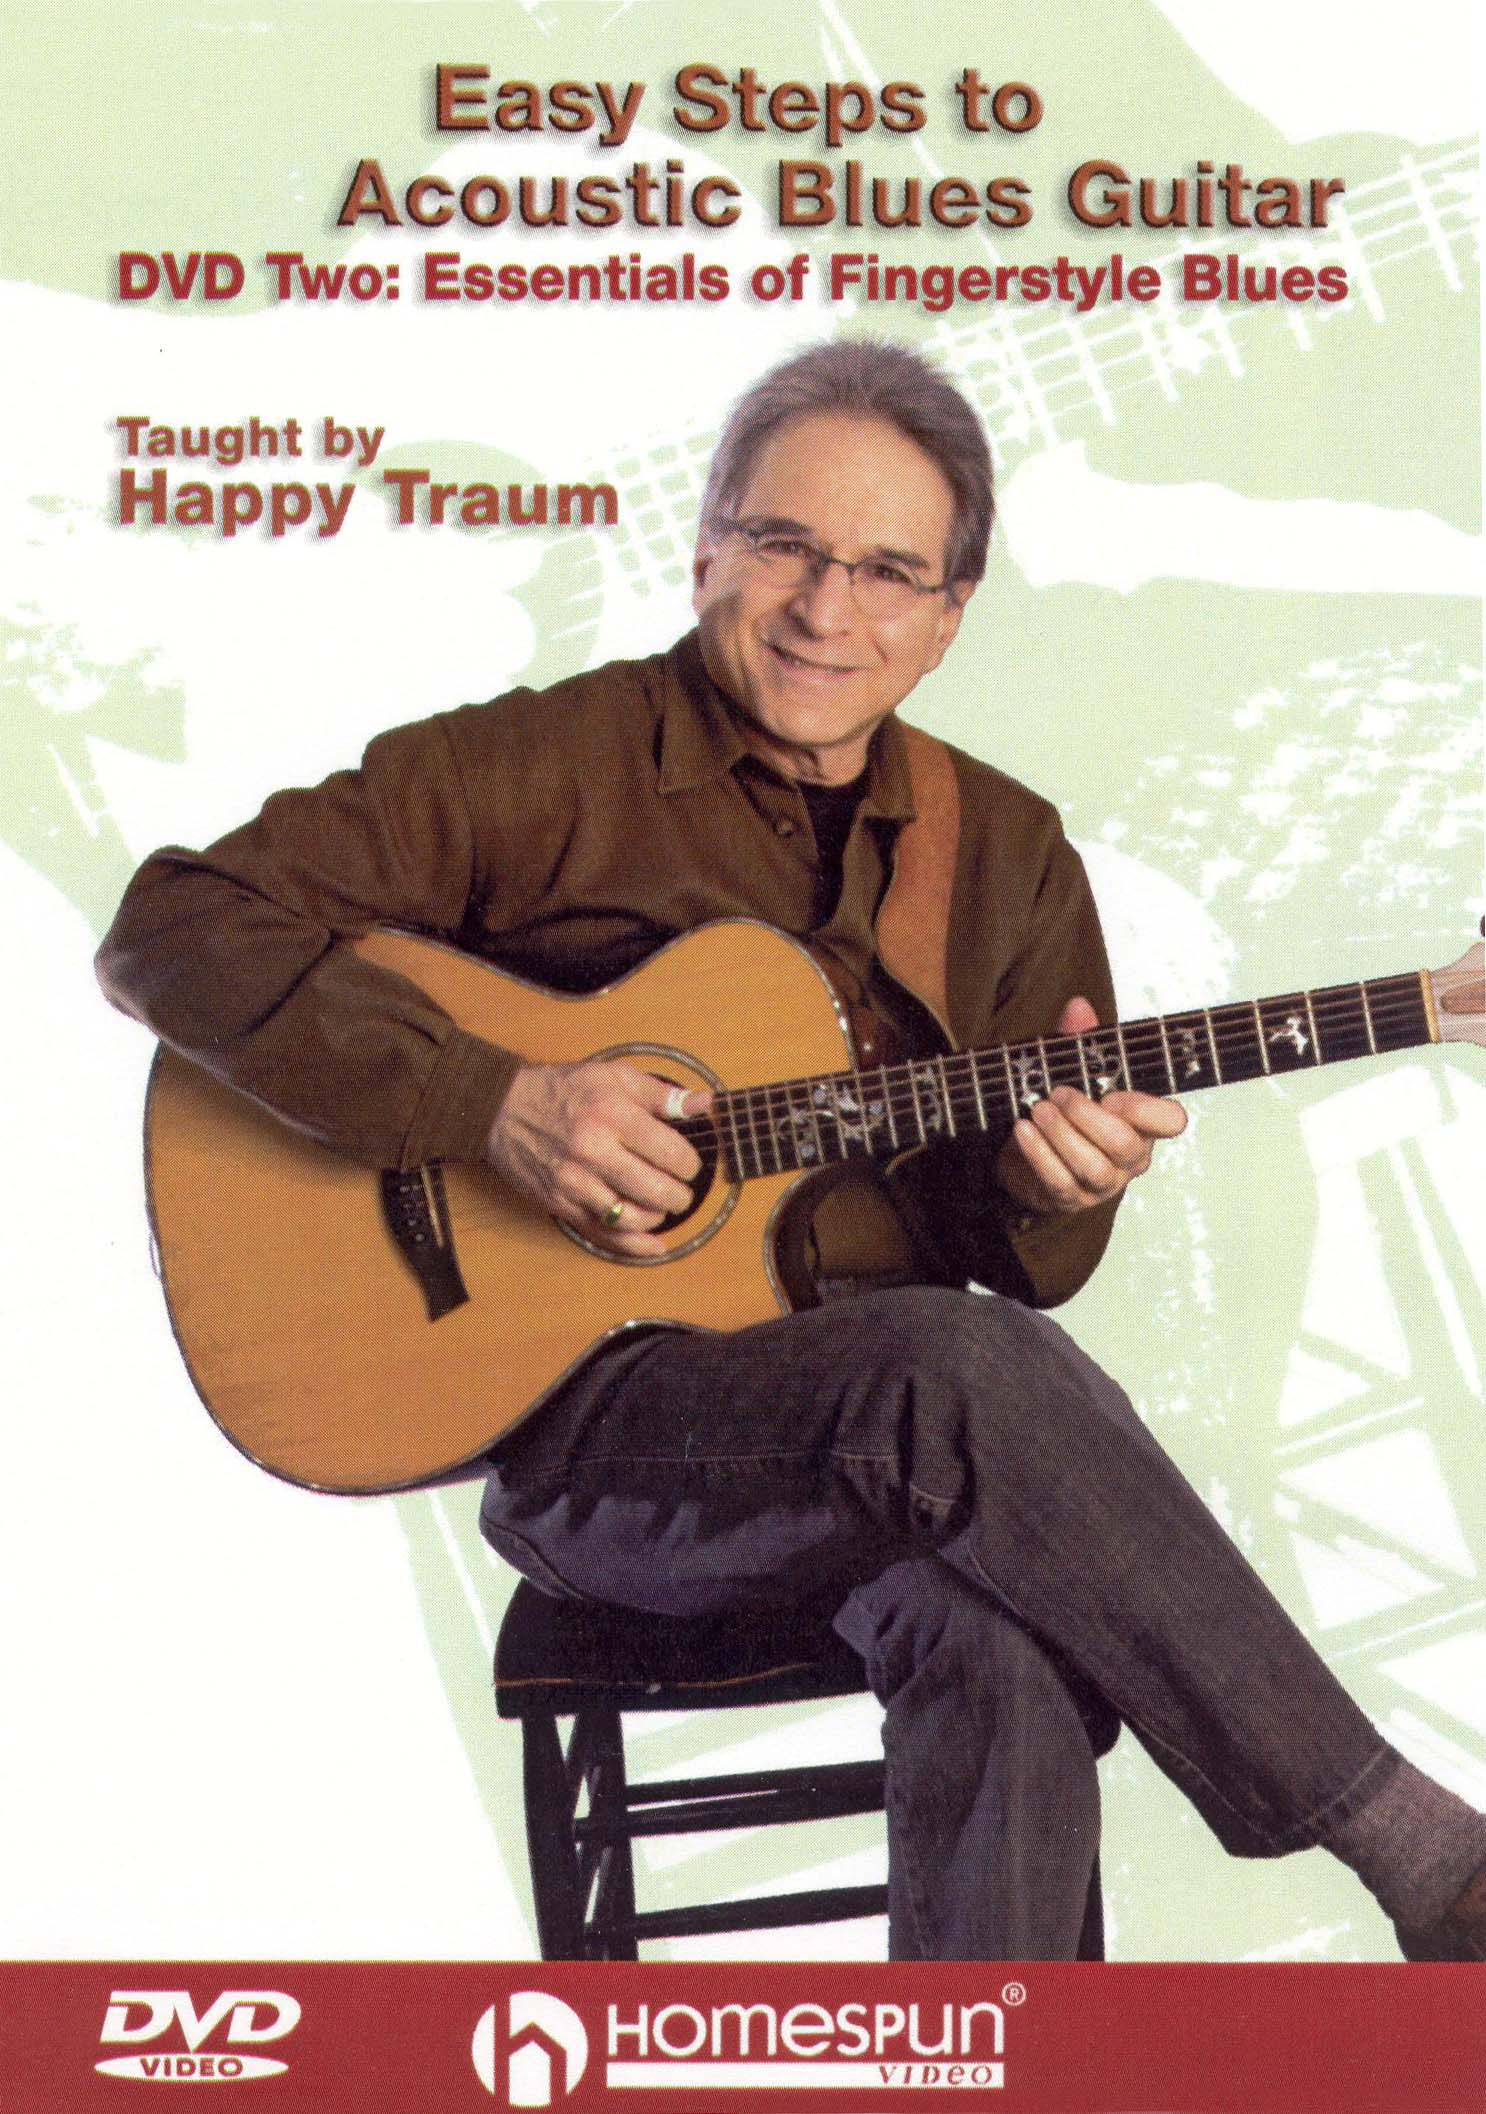 Happy Traum: Essentials of Fingerstyle Blues, Vol. 2